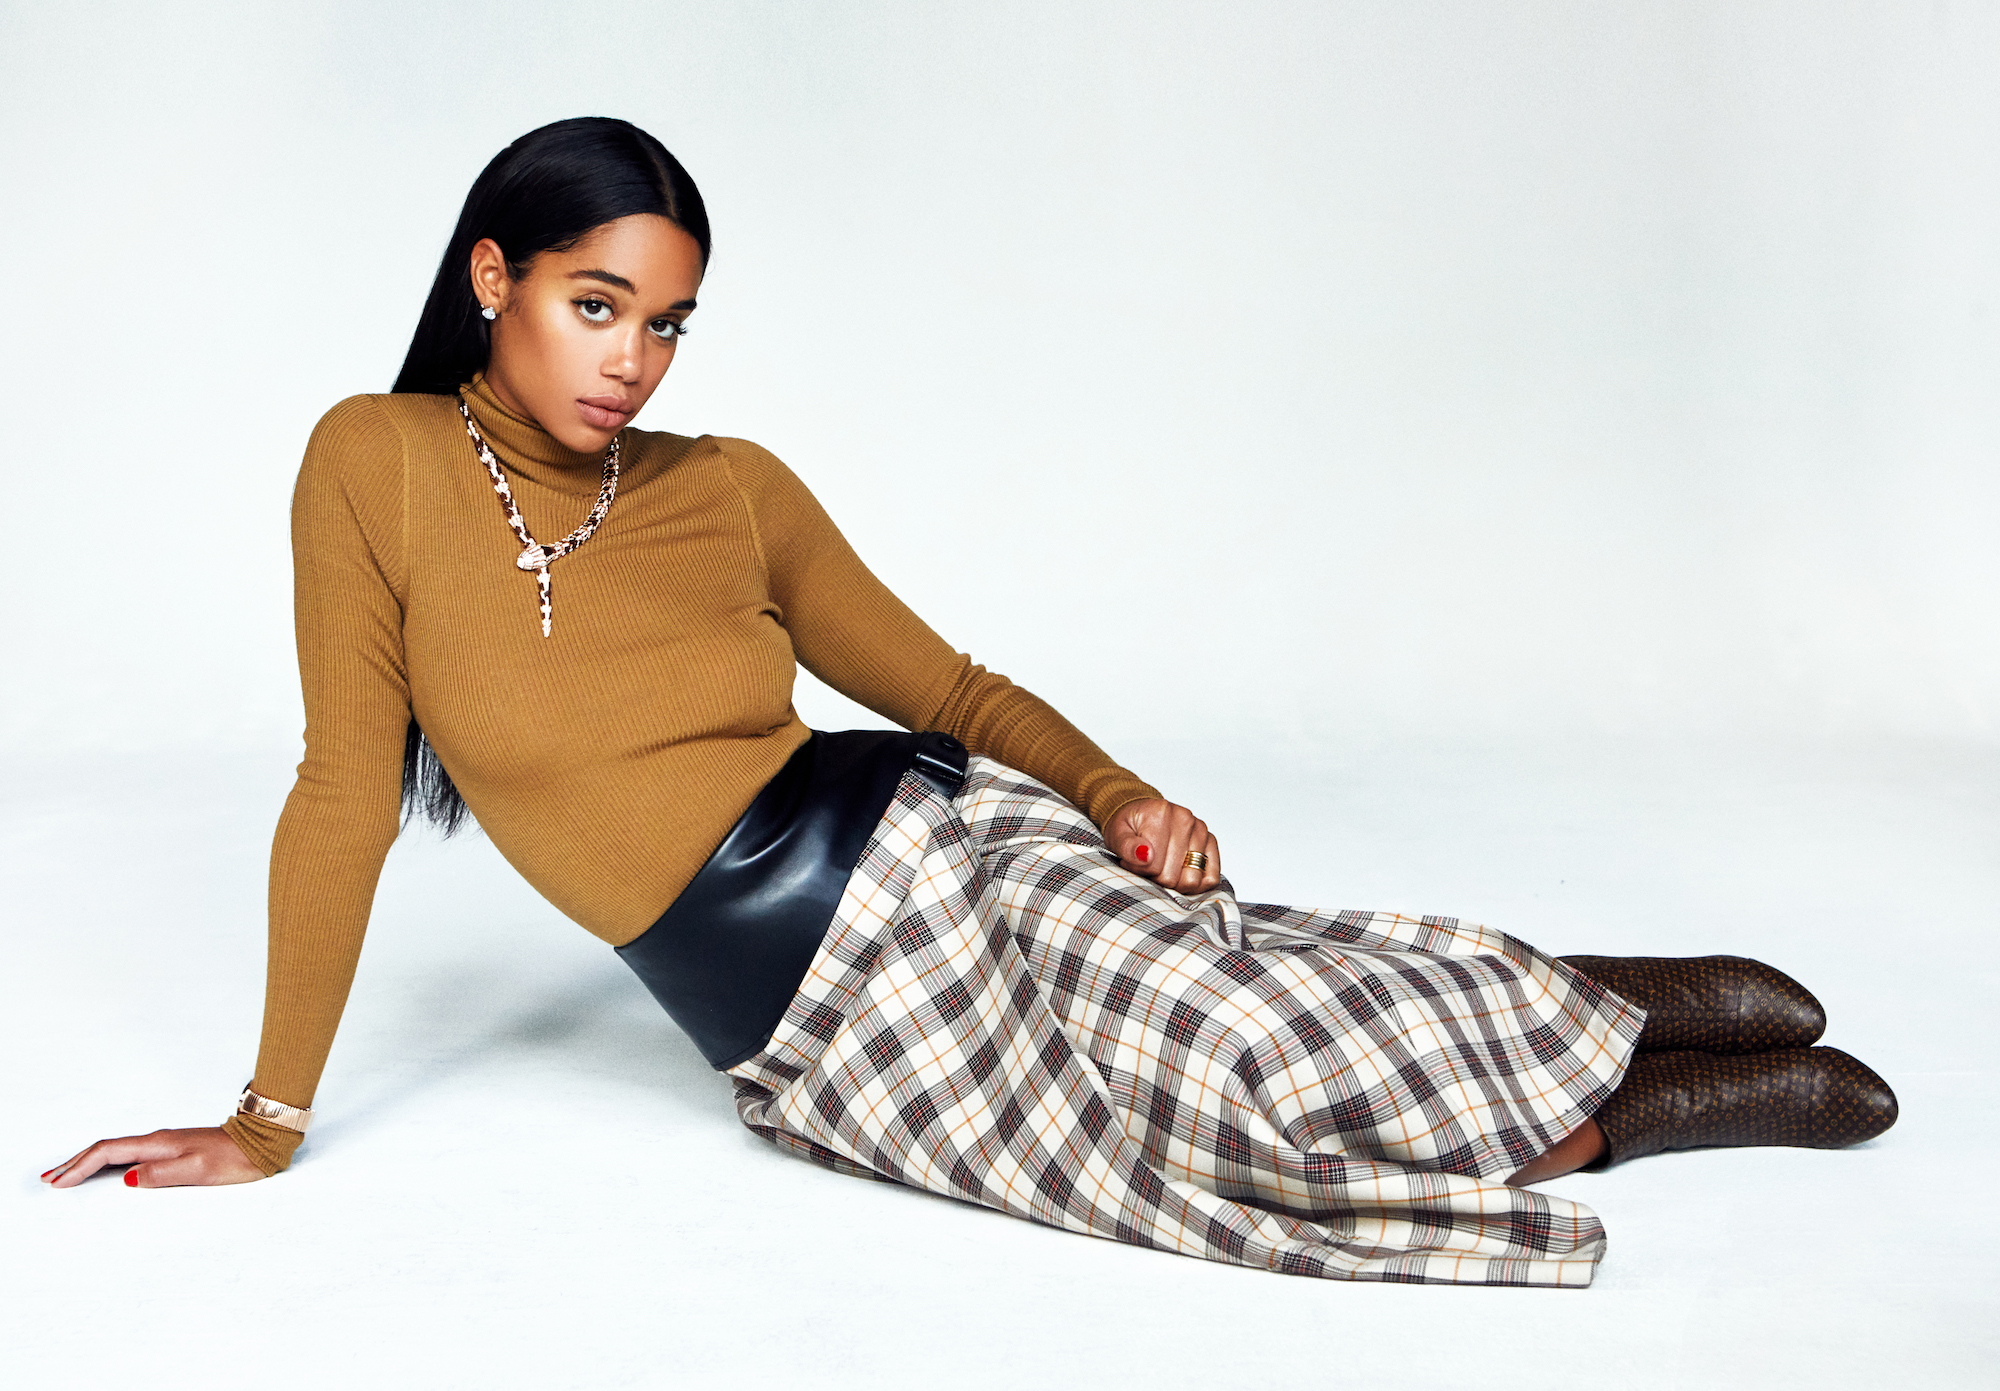 Laura Harrier on the cover of the Summer 19 issue of Wonderland check skirt